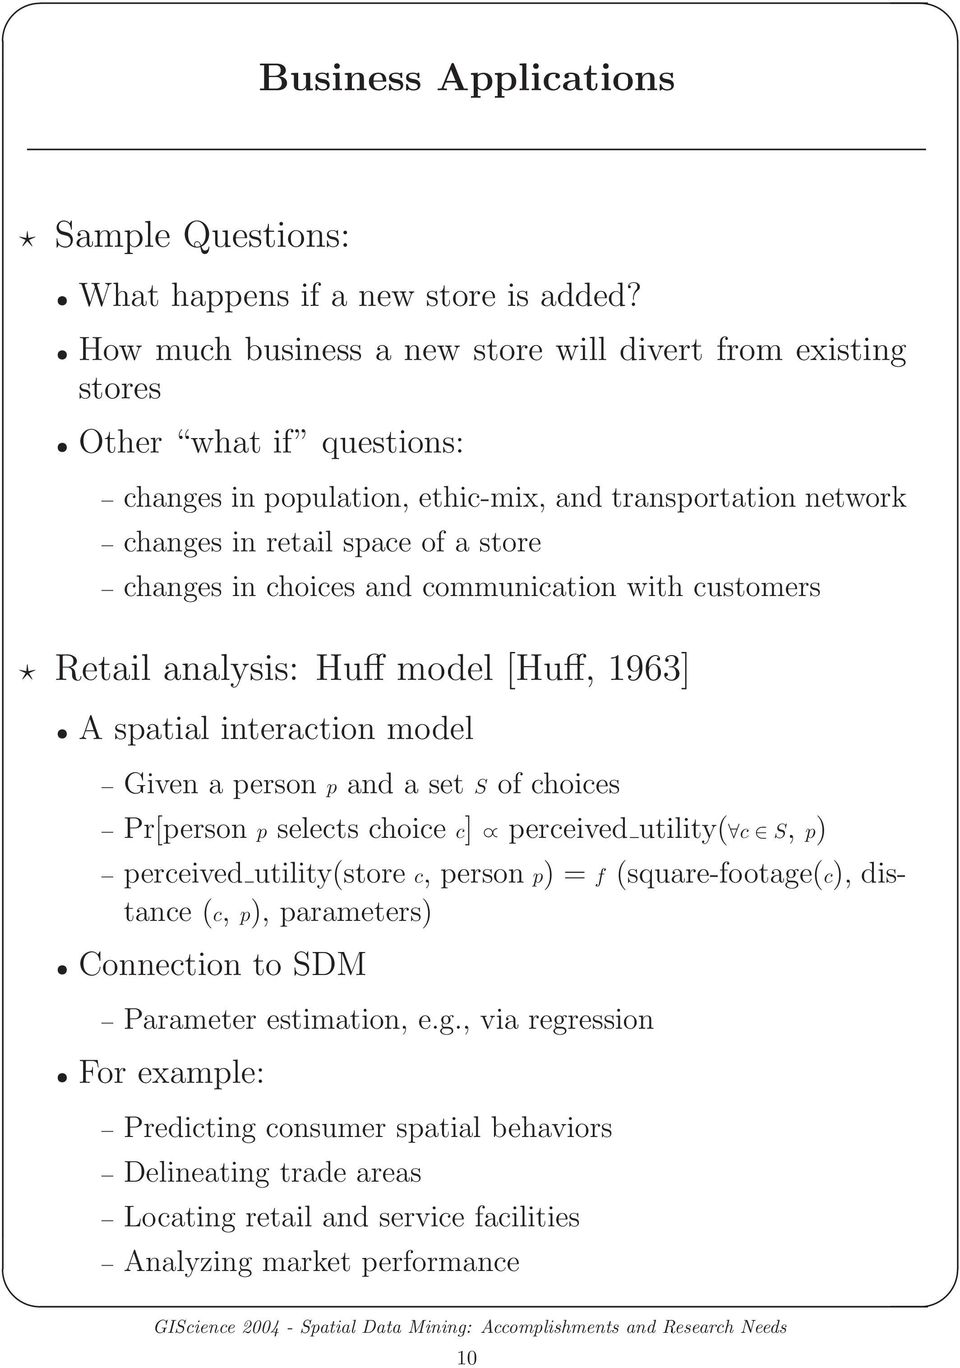 in choices and communication with customers Retail analysis: Huff model [Huff, 1963] A spatial interaction model Given a person p and a set S of choices Pr[person p selects choice c] perceived